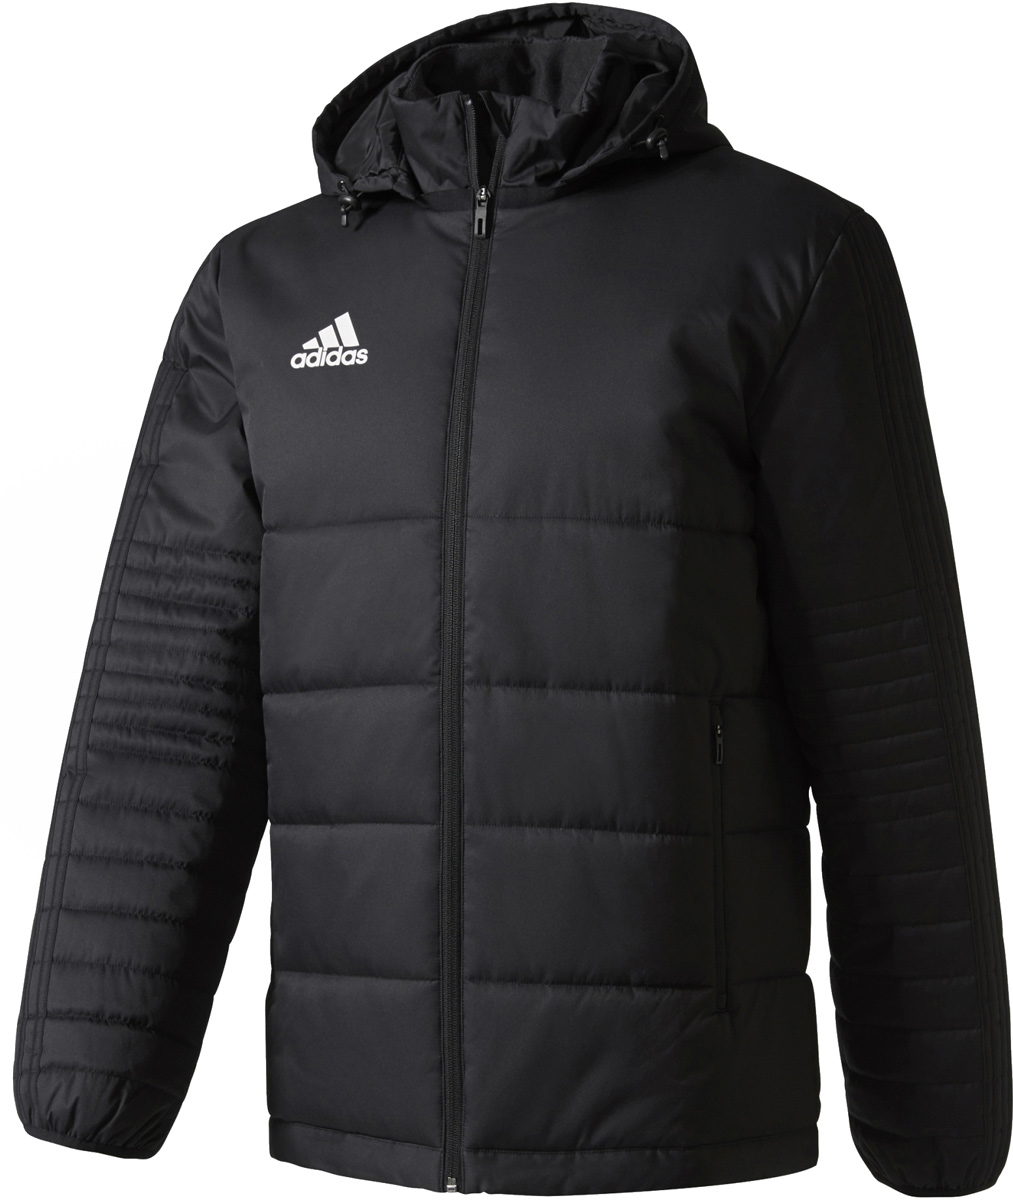 Пуховик мужской Adidas Tiro17 Winter Jk, цвет: черный. BS0042. Размер XXL (60/62) rotosound sm77 jazz bass flatwound strings monel